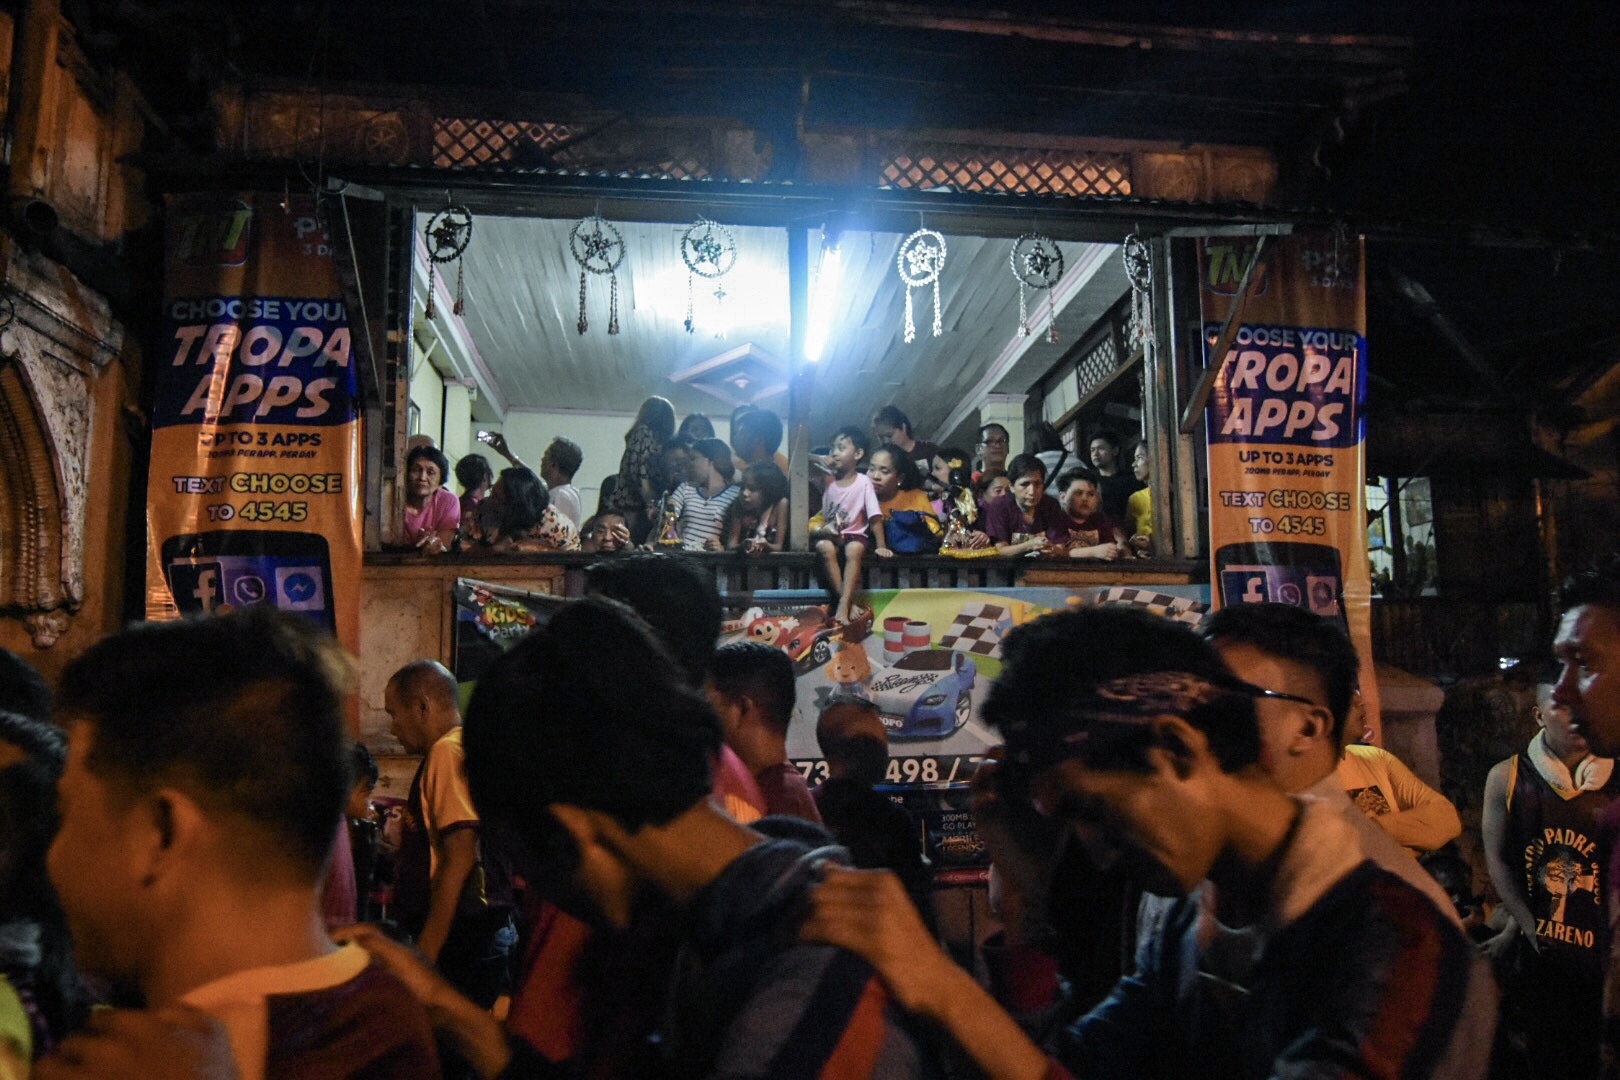 DEVOTEES. Some residents stay in their homes to keep safe from the swelling crowd.